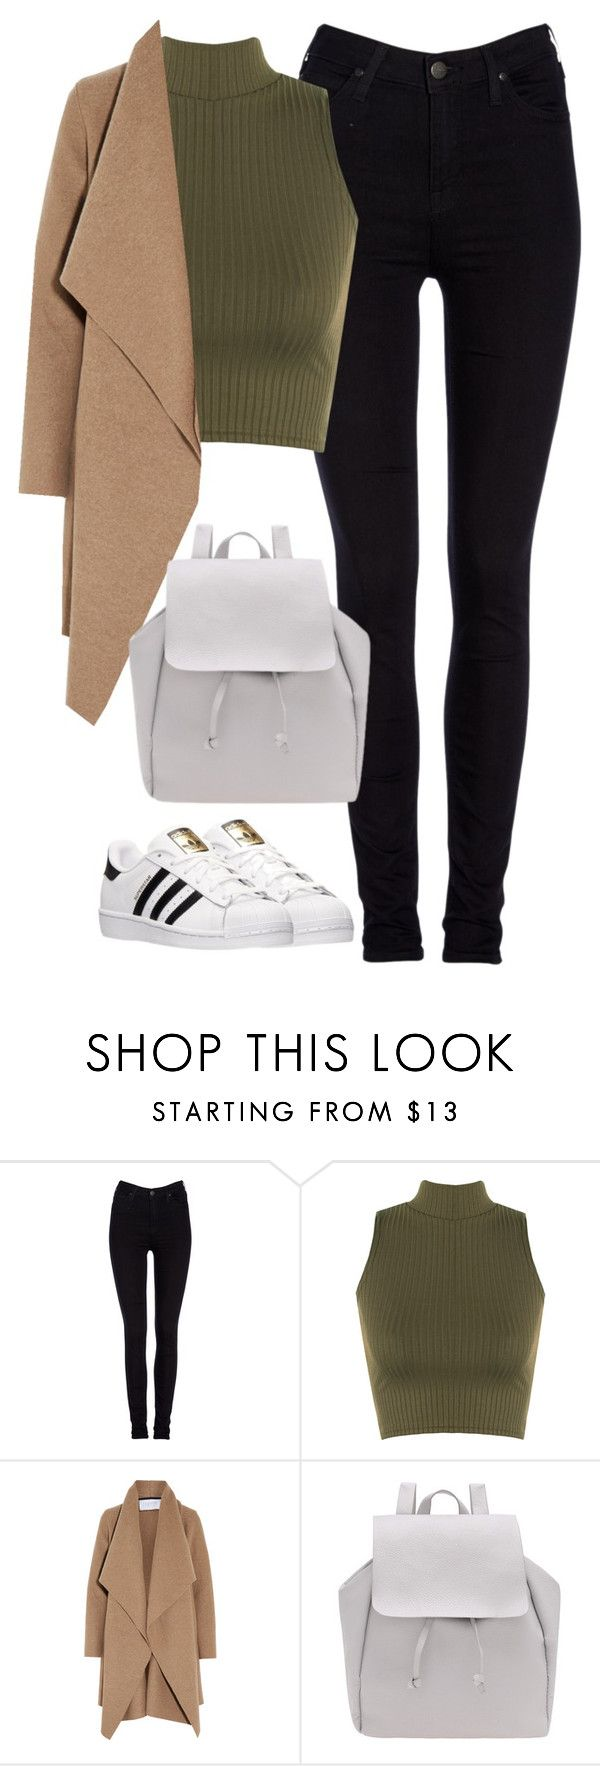 """Untitled #462"" by christyandnef on Polyvore featuring Lee, WearAll, Harris Wharf London, adidas, women's clothing, women, female, woman, misses and juniors"